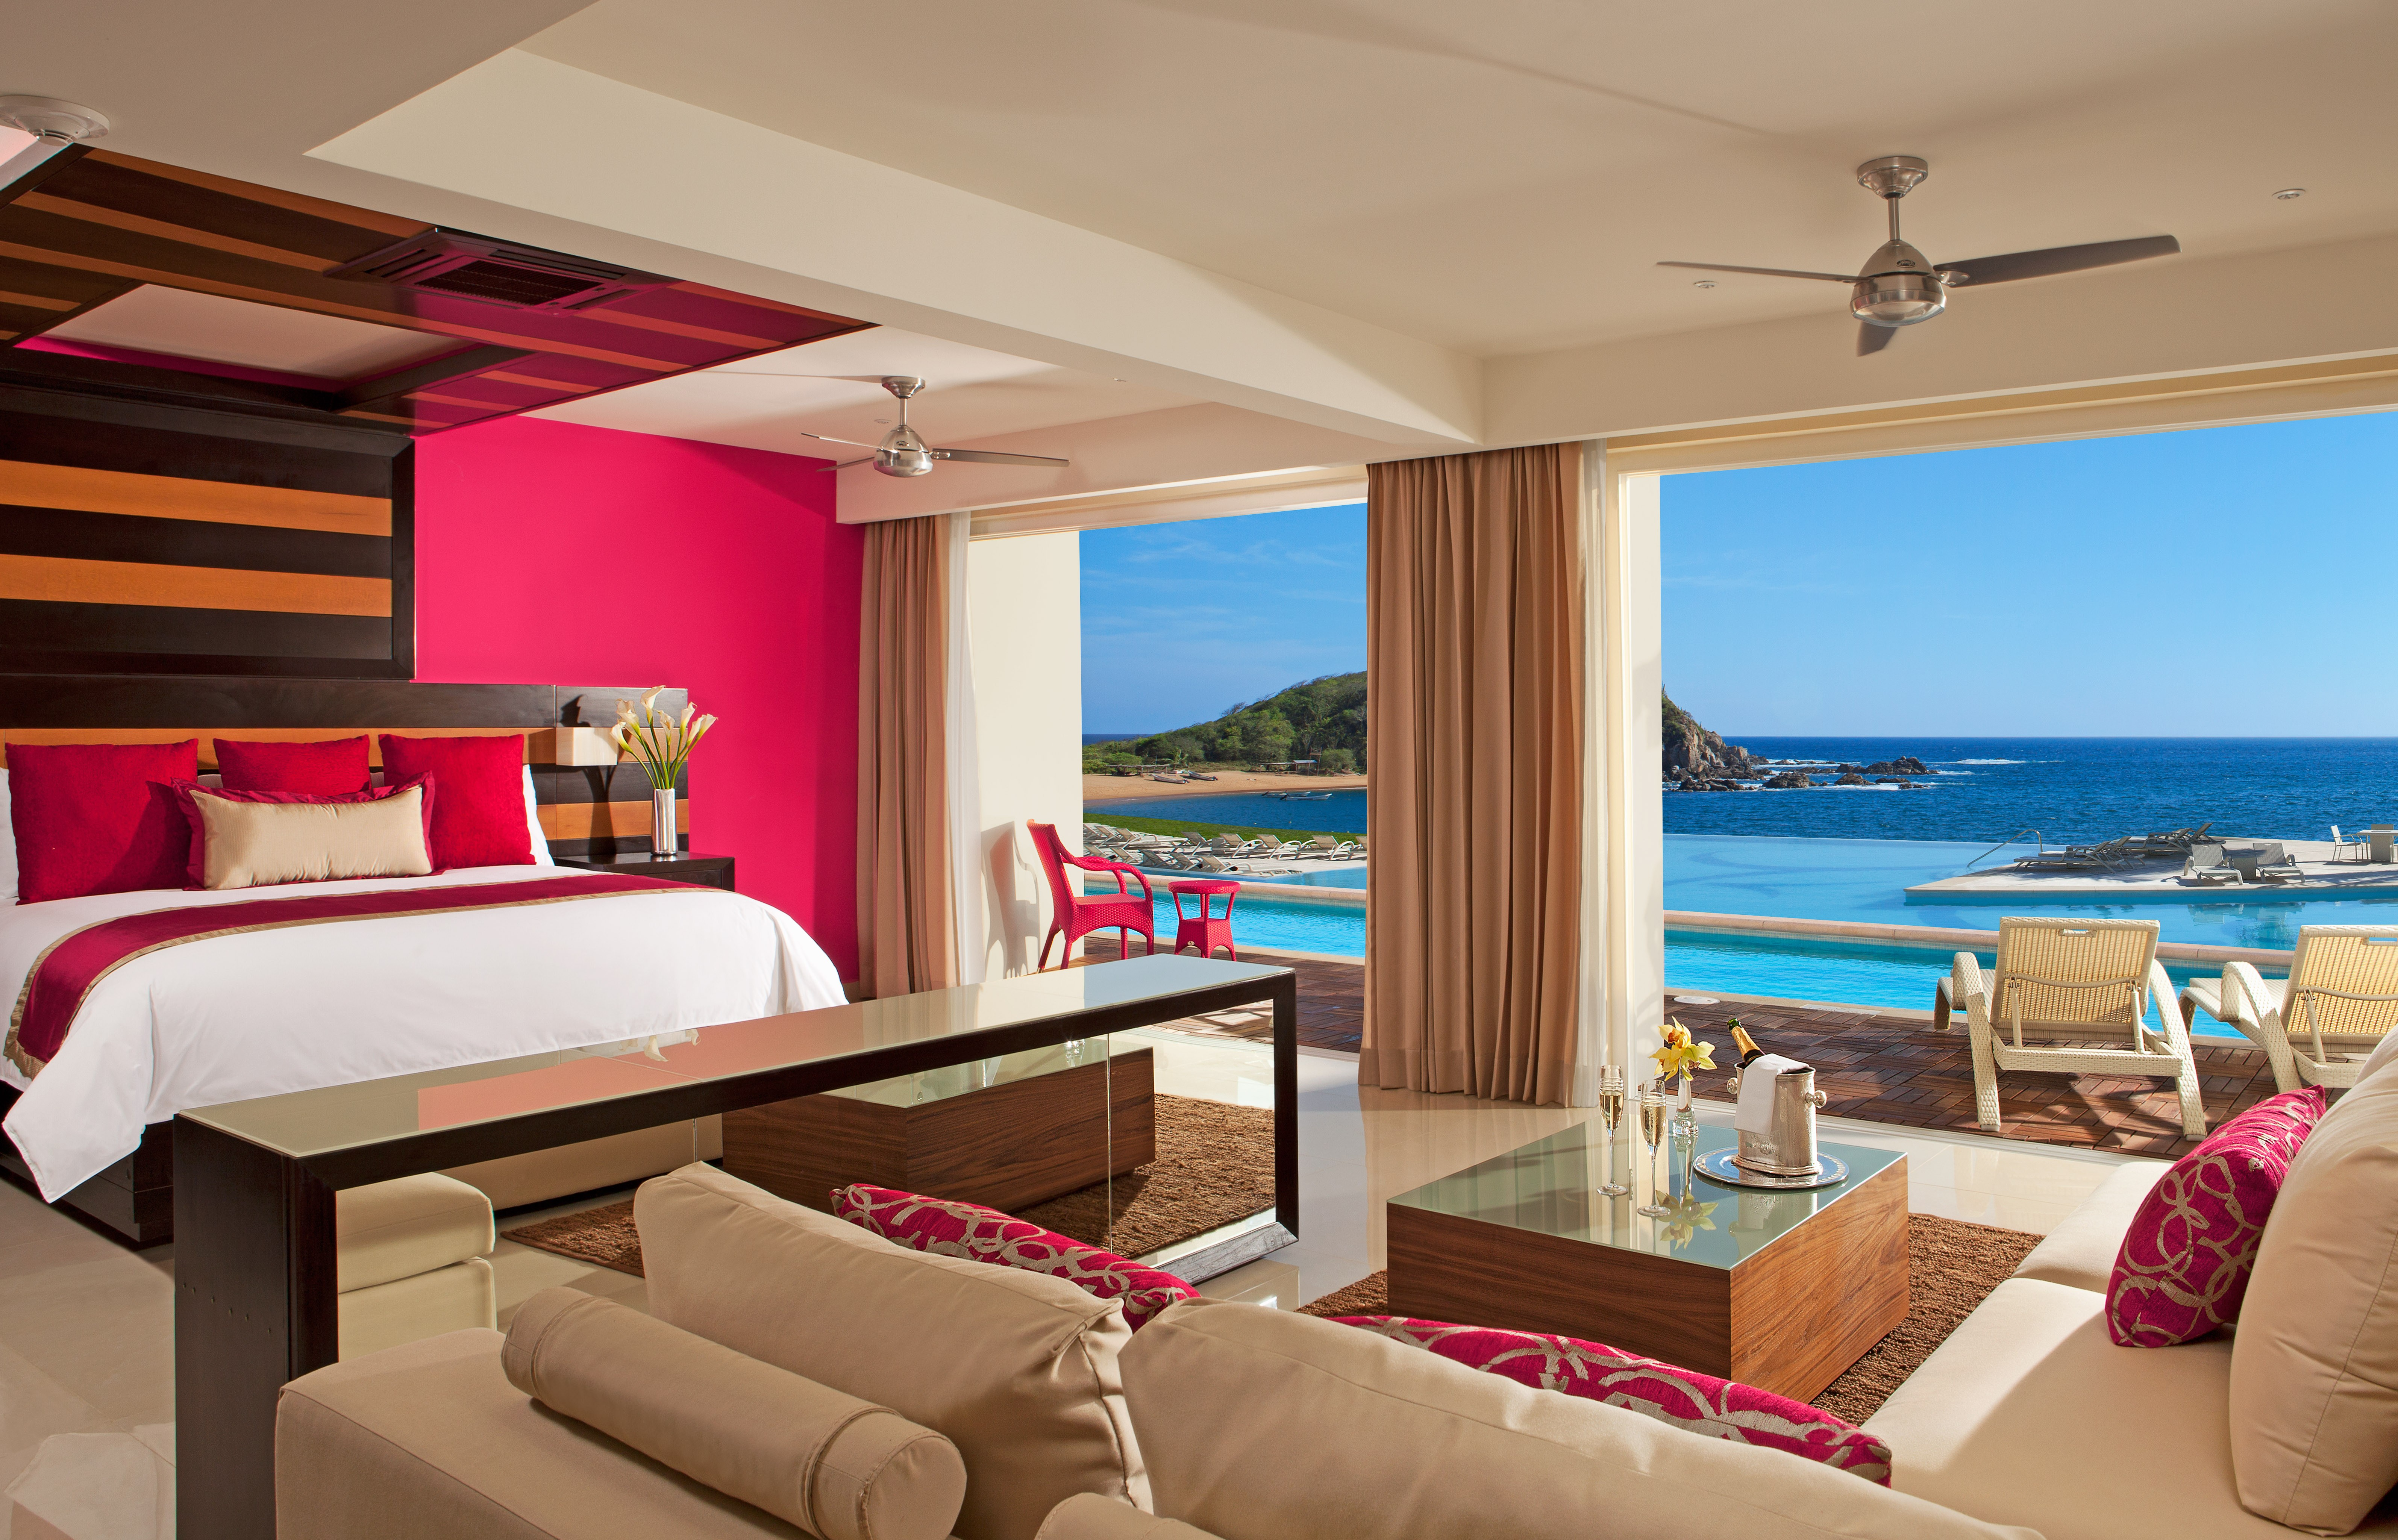 Best Hotels In Huatulco Mexico